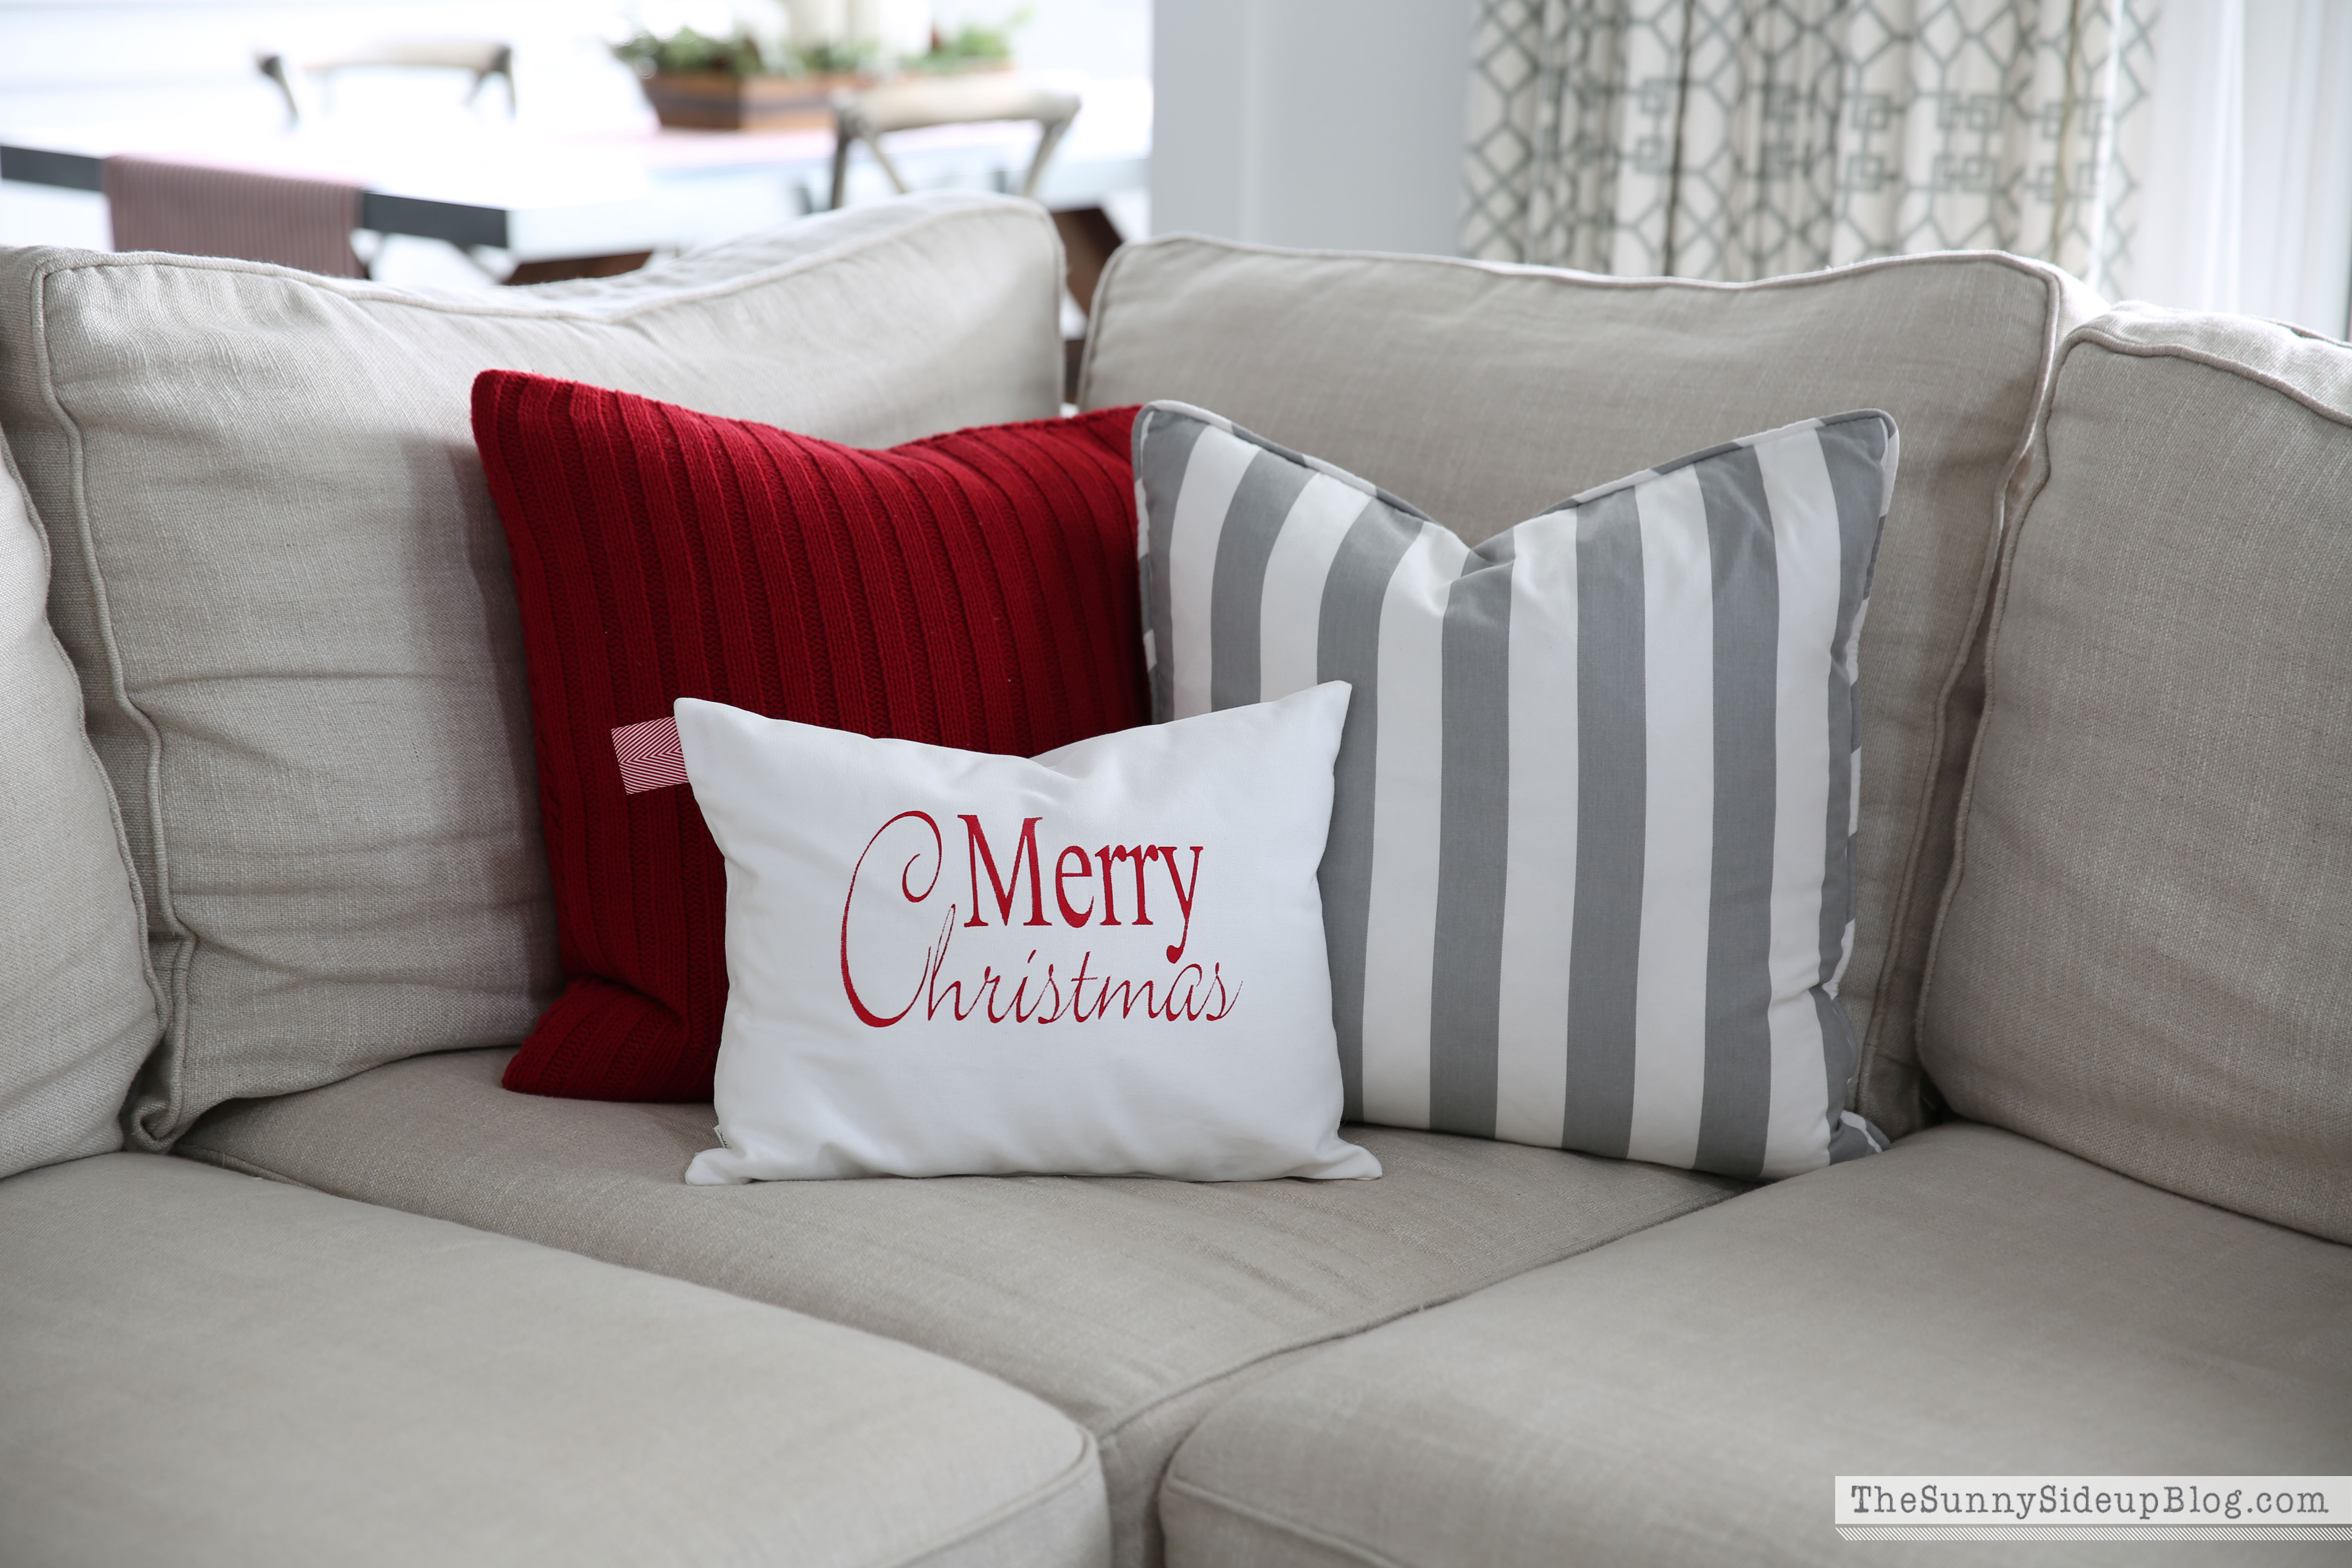 merry-christmas-pillow